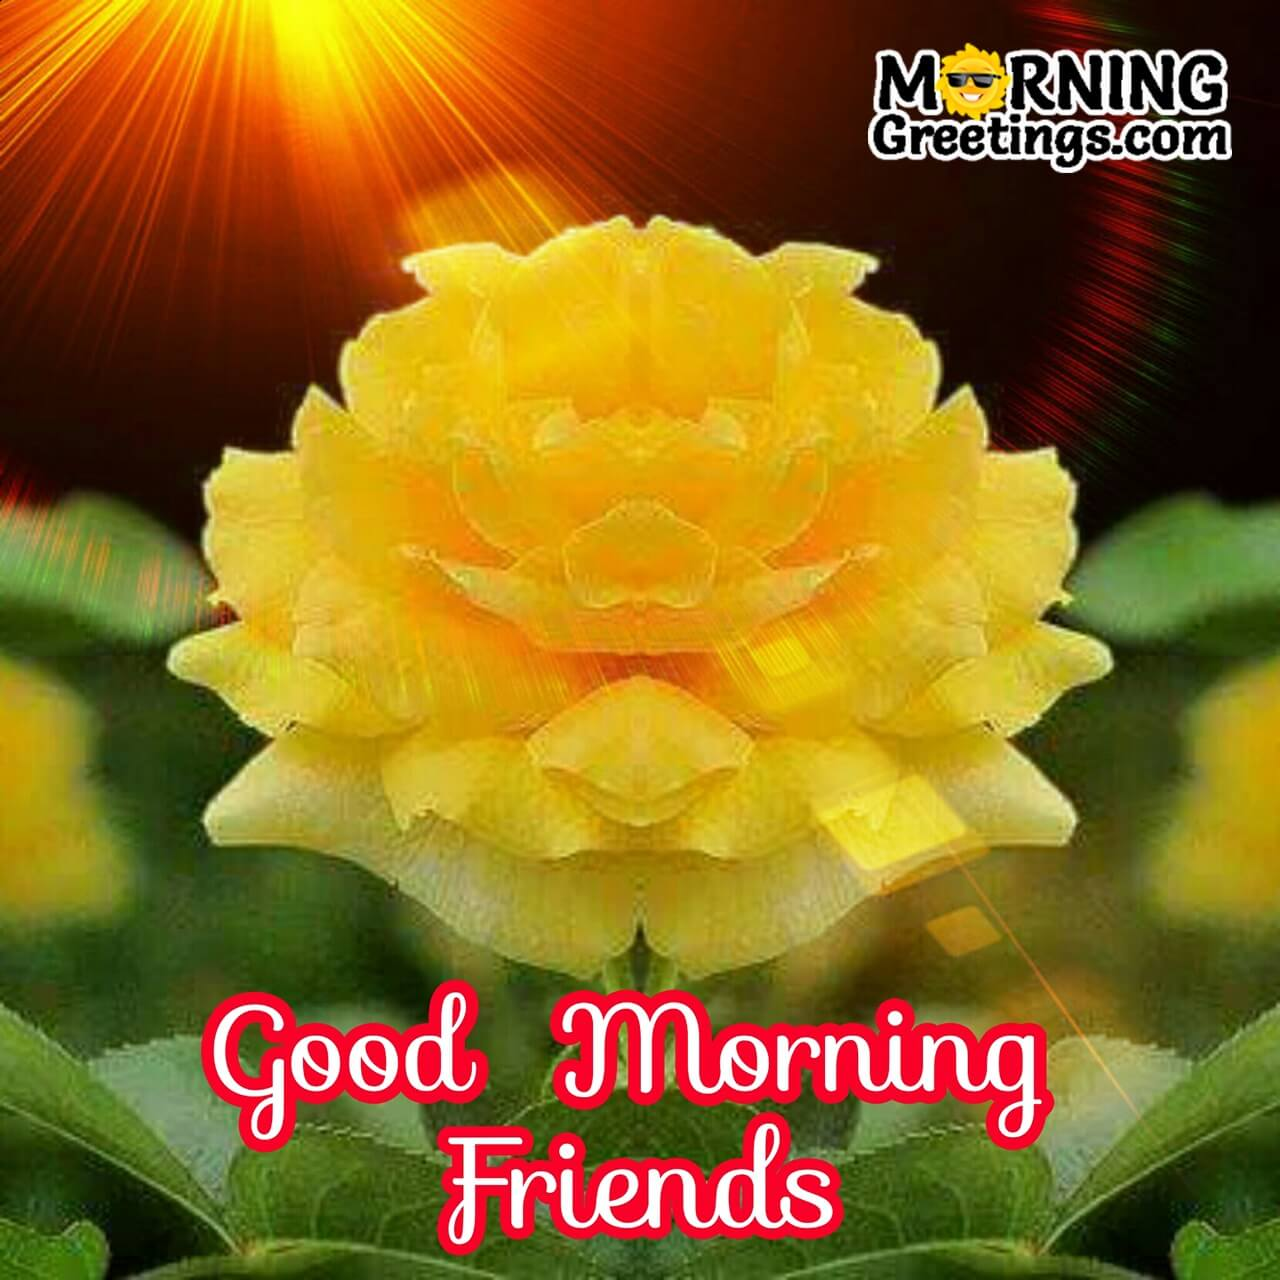 10 Great Good Morning Wishes For Friend Morning Greetings